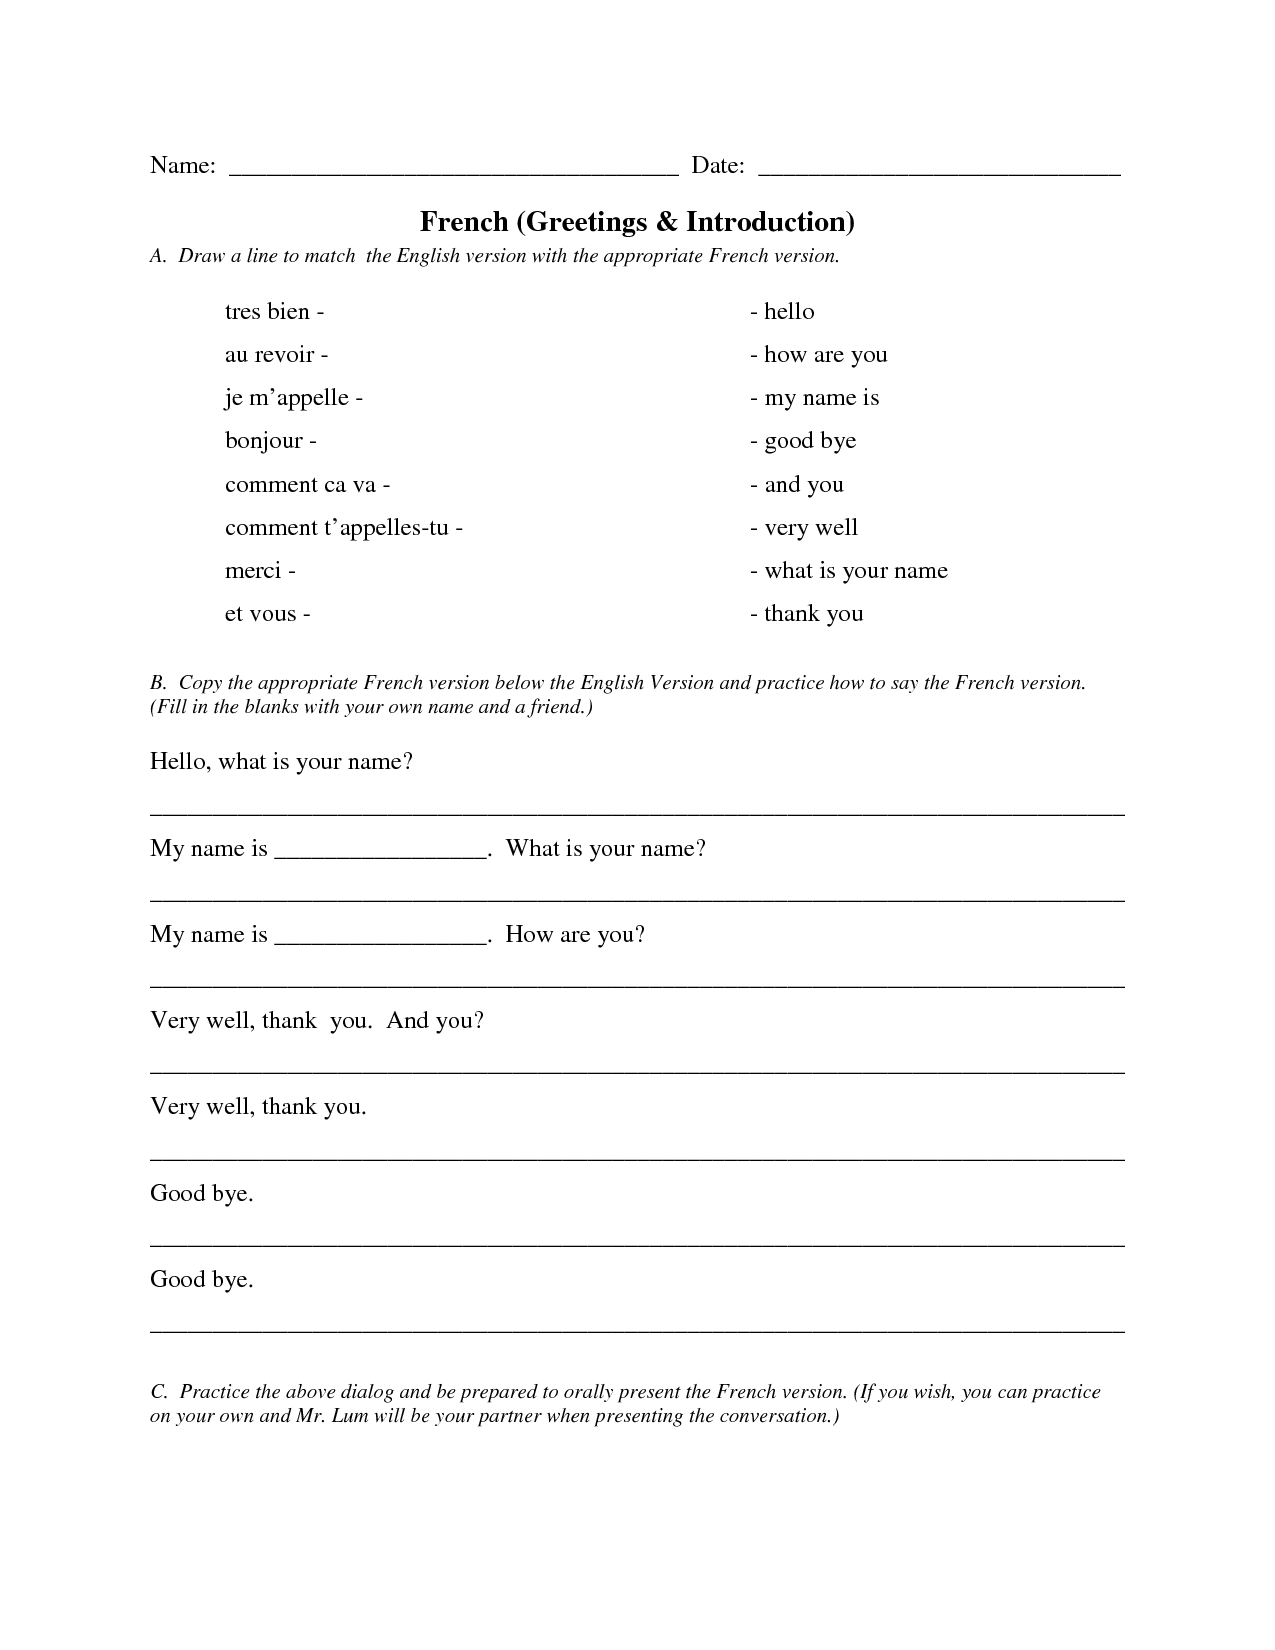 French Greetings Worksheet